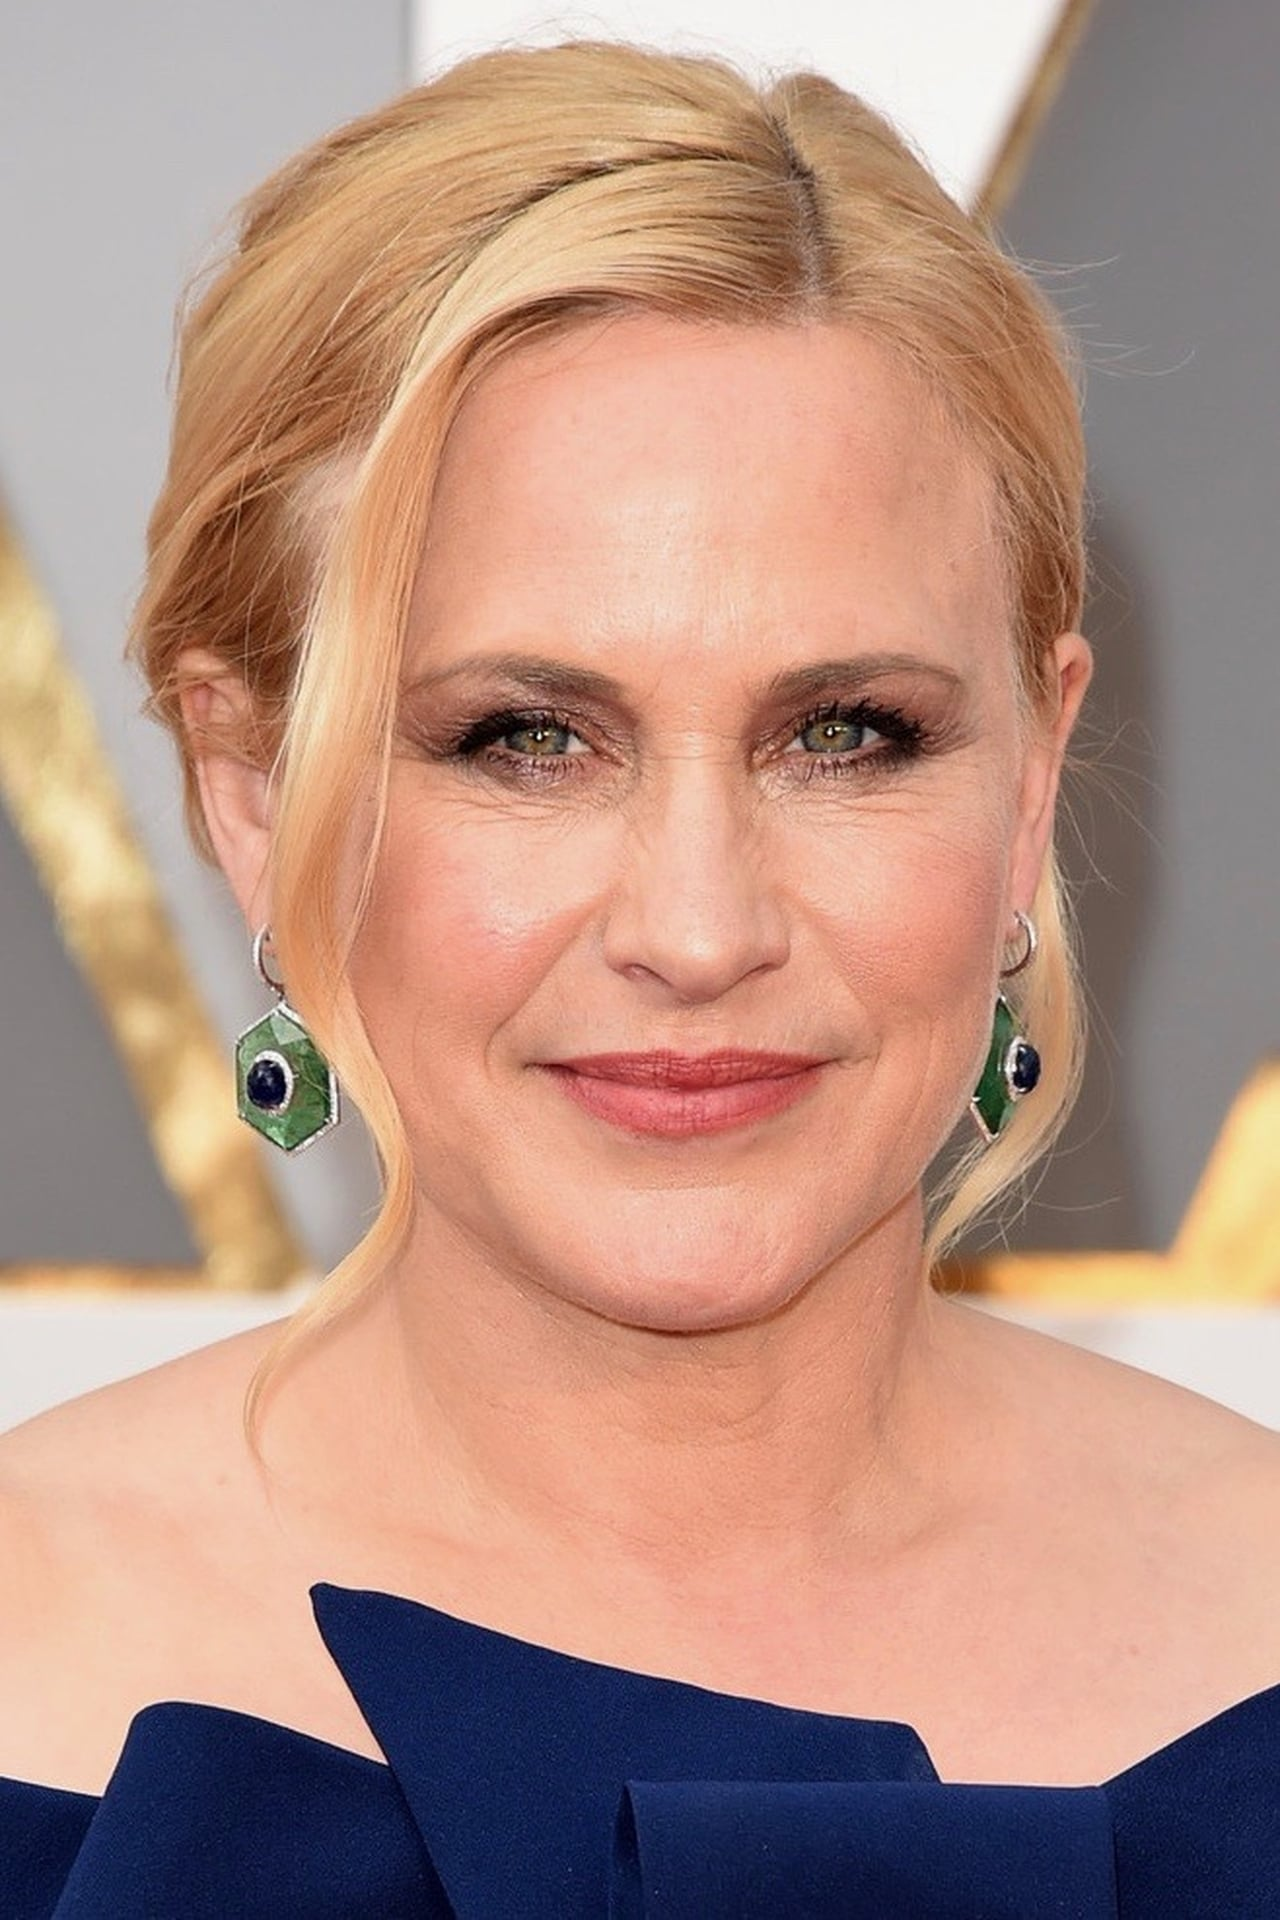 Patricia Arquette isTilly Mitchell